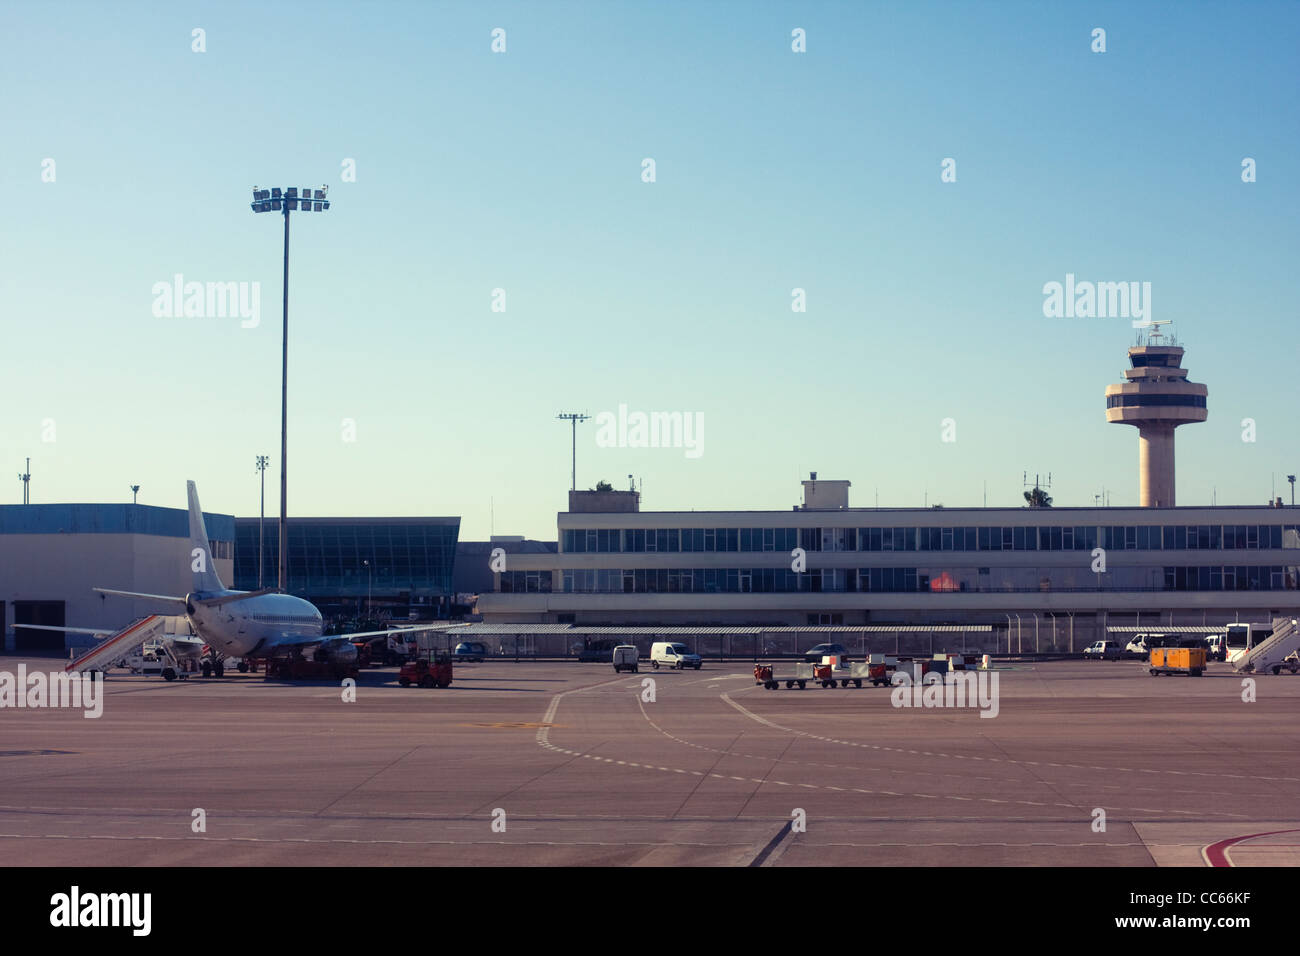 Airplane at an airport Stock Photo